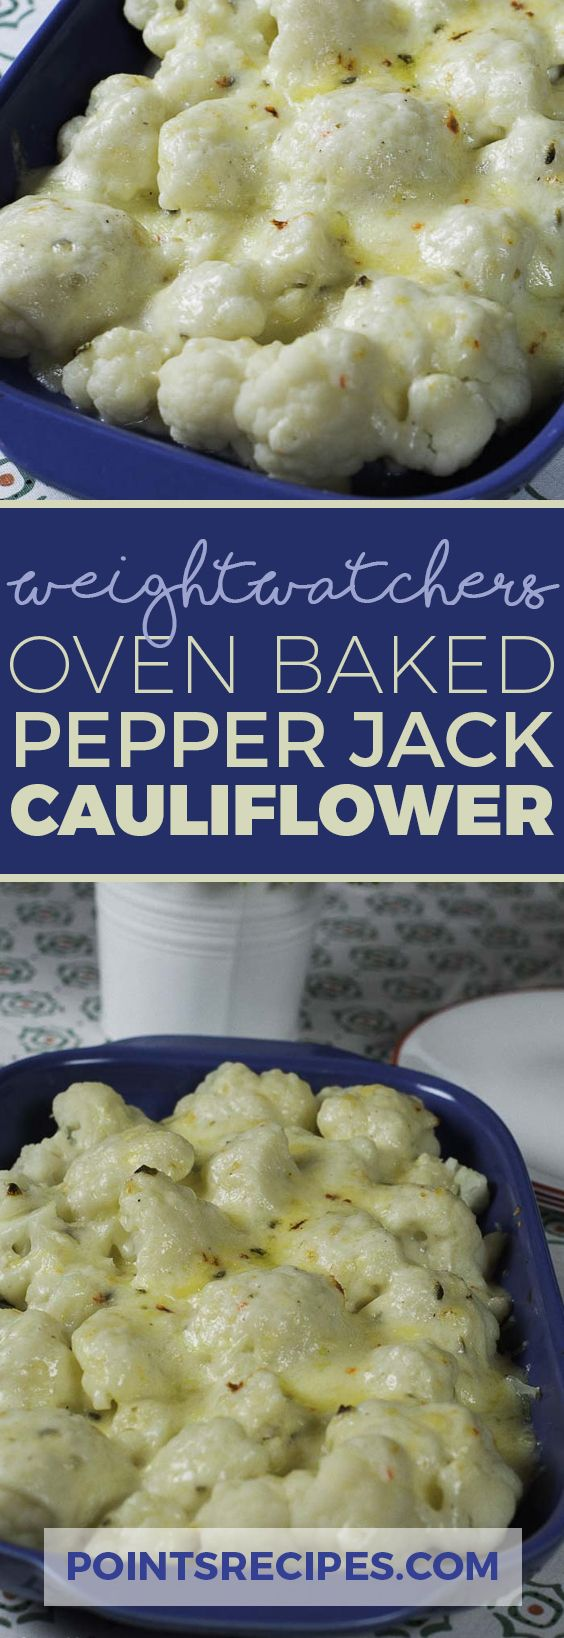 Weight Watchers Oven Baked Pepper Jack Cauliflower via @5mintohealth